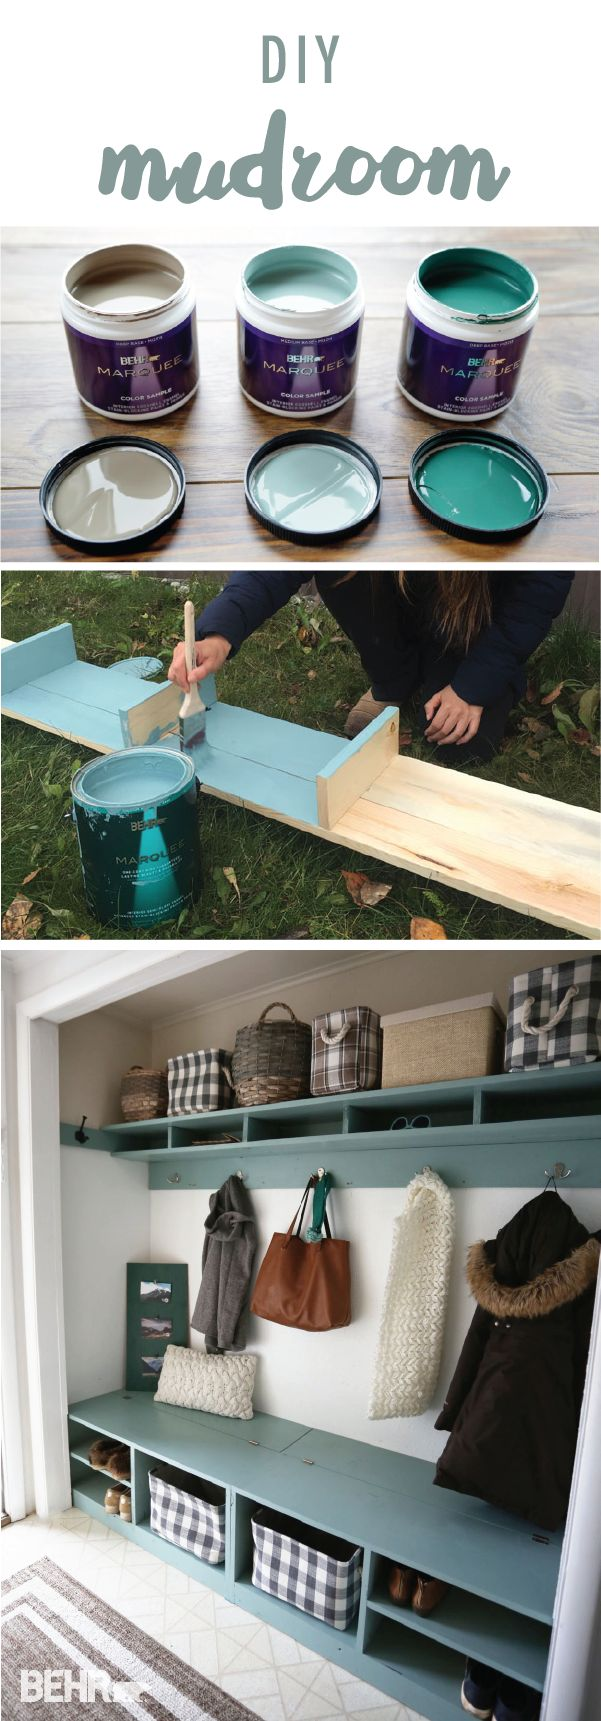 Ana, from Ana White, introduced a pop of color into her home with the BEHR 2018 Color of the Year: In The Moment. This DIY coat and shoe rack adds storage and style to Ana's mudroom. Ana also used Road Less-Traveled and Equilibrium, from the BEHR 2018 Color Trends, to create a chic color palette for her home. Check out her full tutorial to learn more.